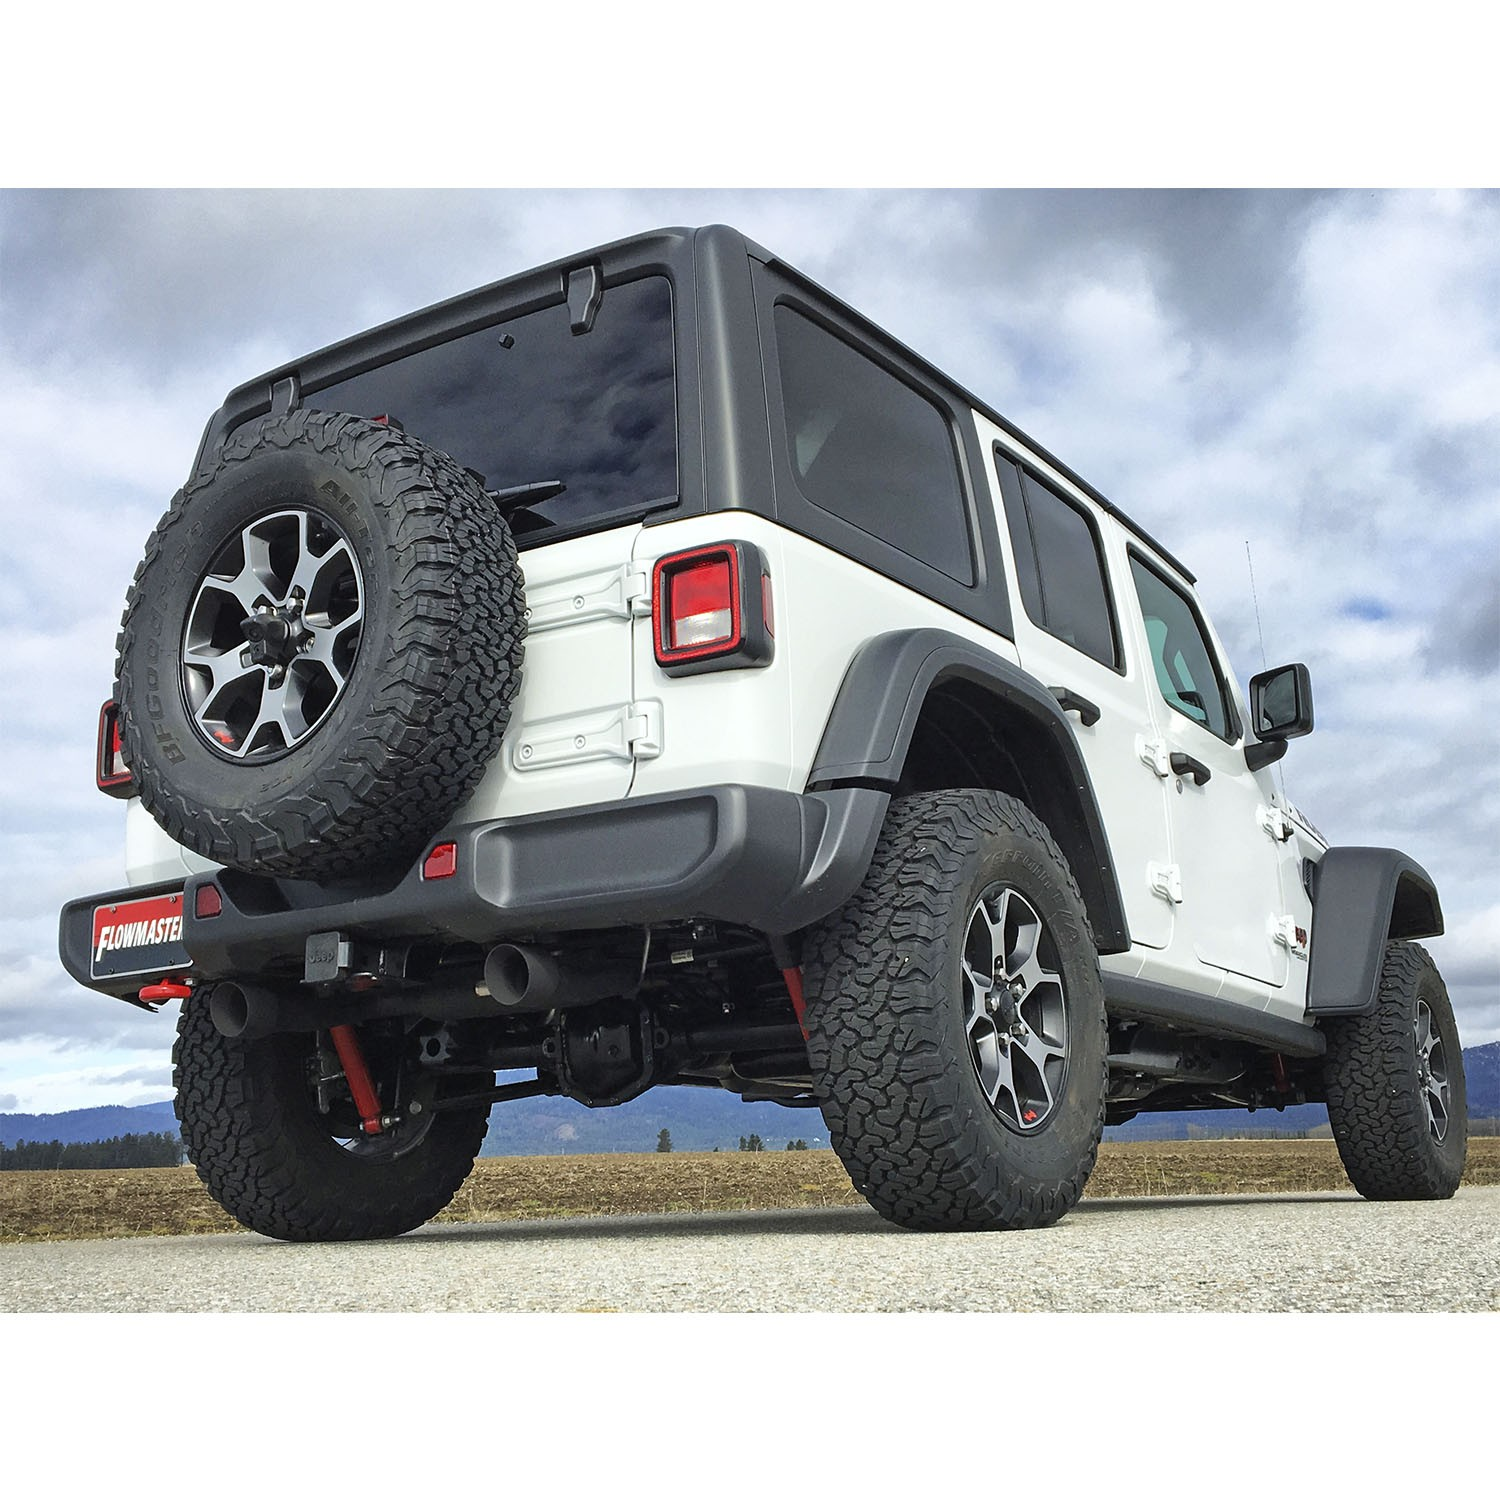 2018 Jeep Wrangler Sounds Great With Flowmaster Exhaust System Autoevolution